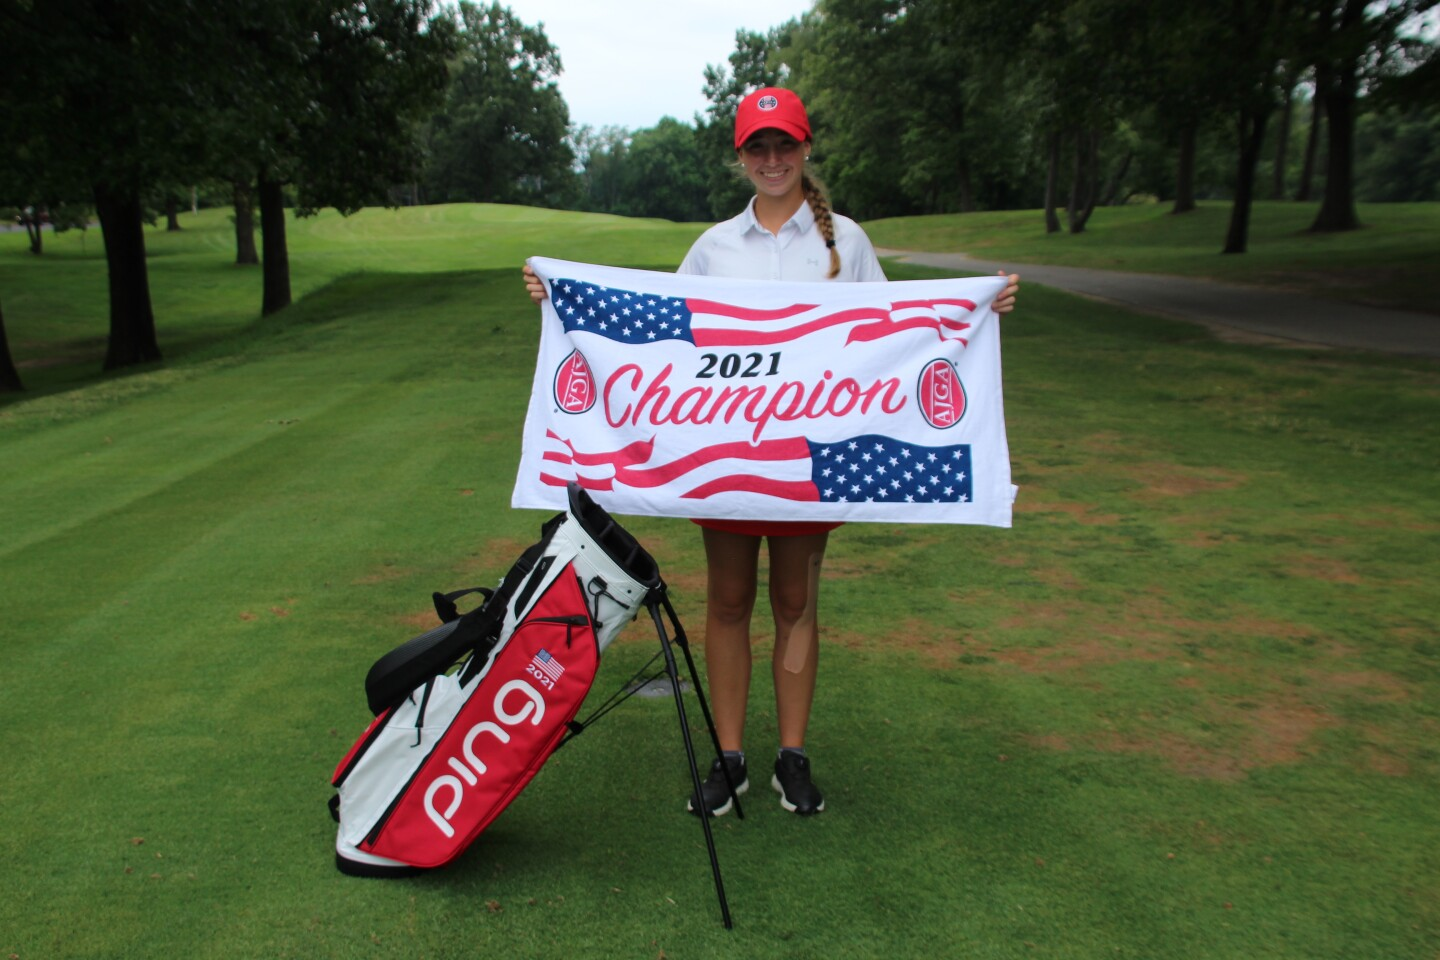 Kary Hollenbaugh with champ towel and bag  -2021 AJGA Junior at Knollwood presented by Yoder Oil.JPG